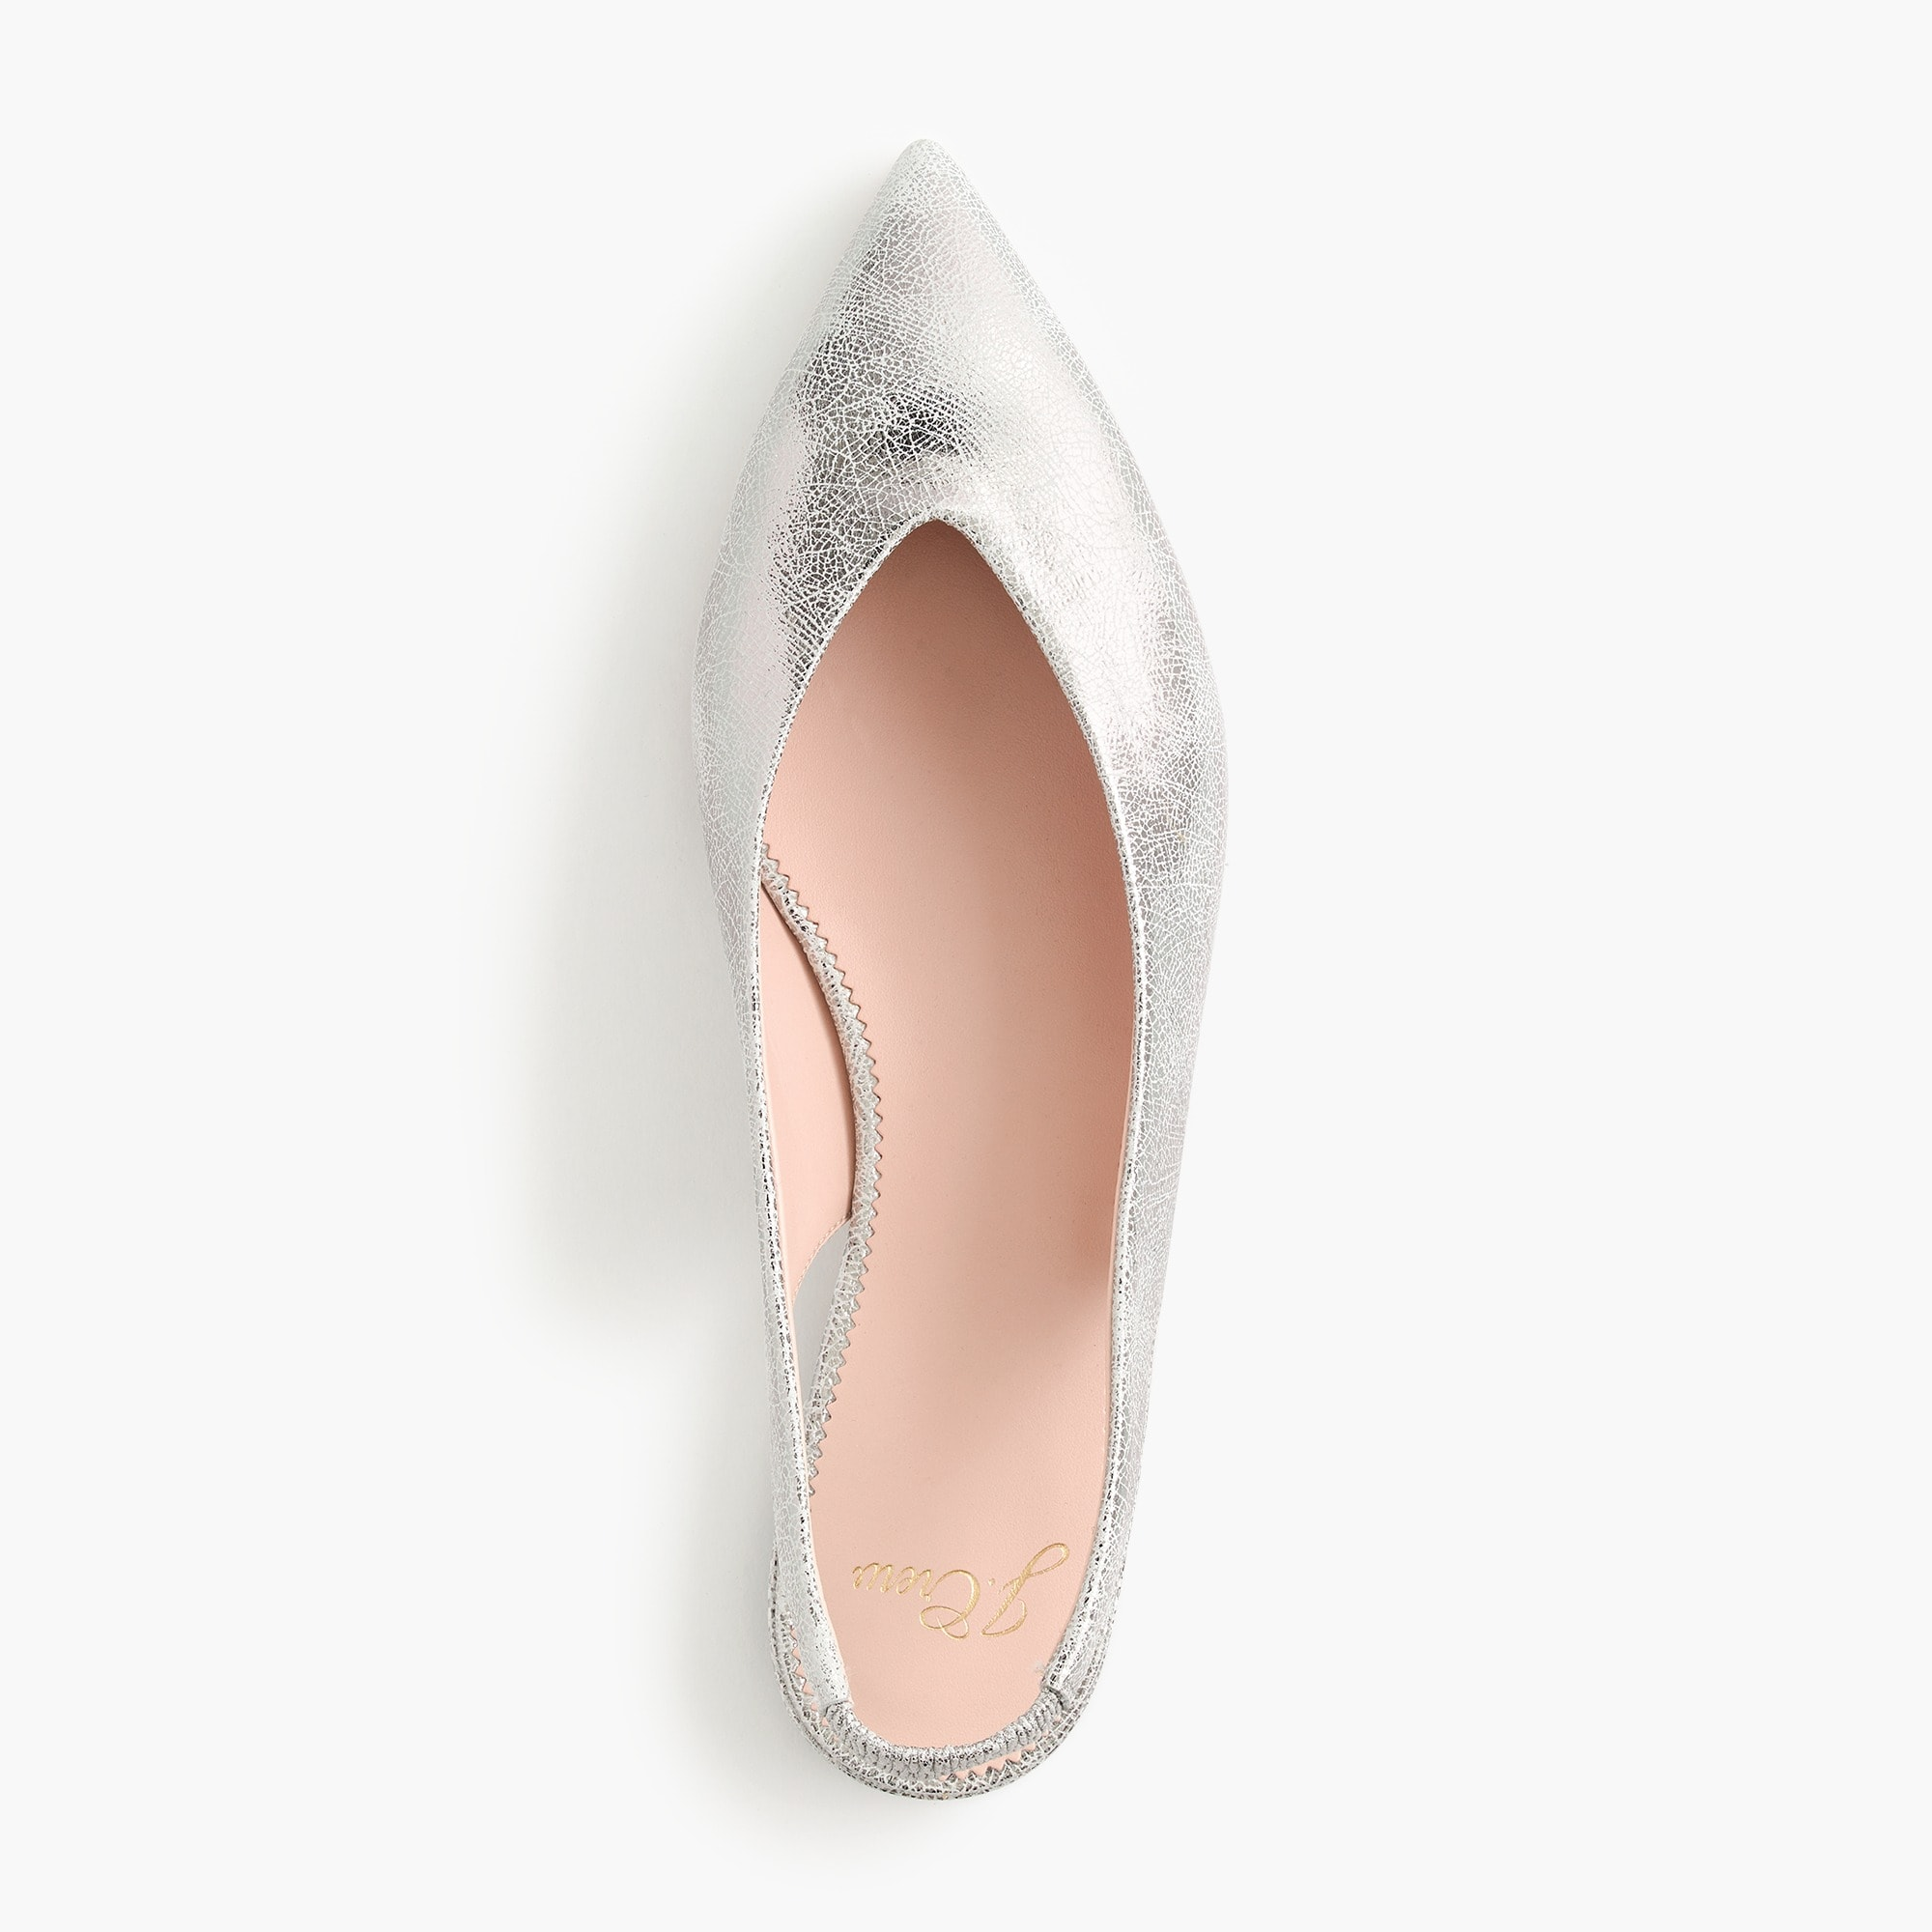 Image 1 for Pointed-toe slingback flats in metallic cracked-leather